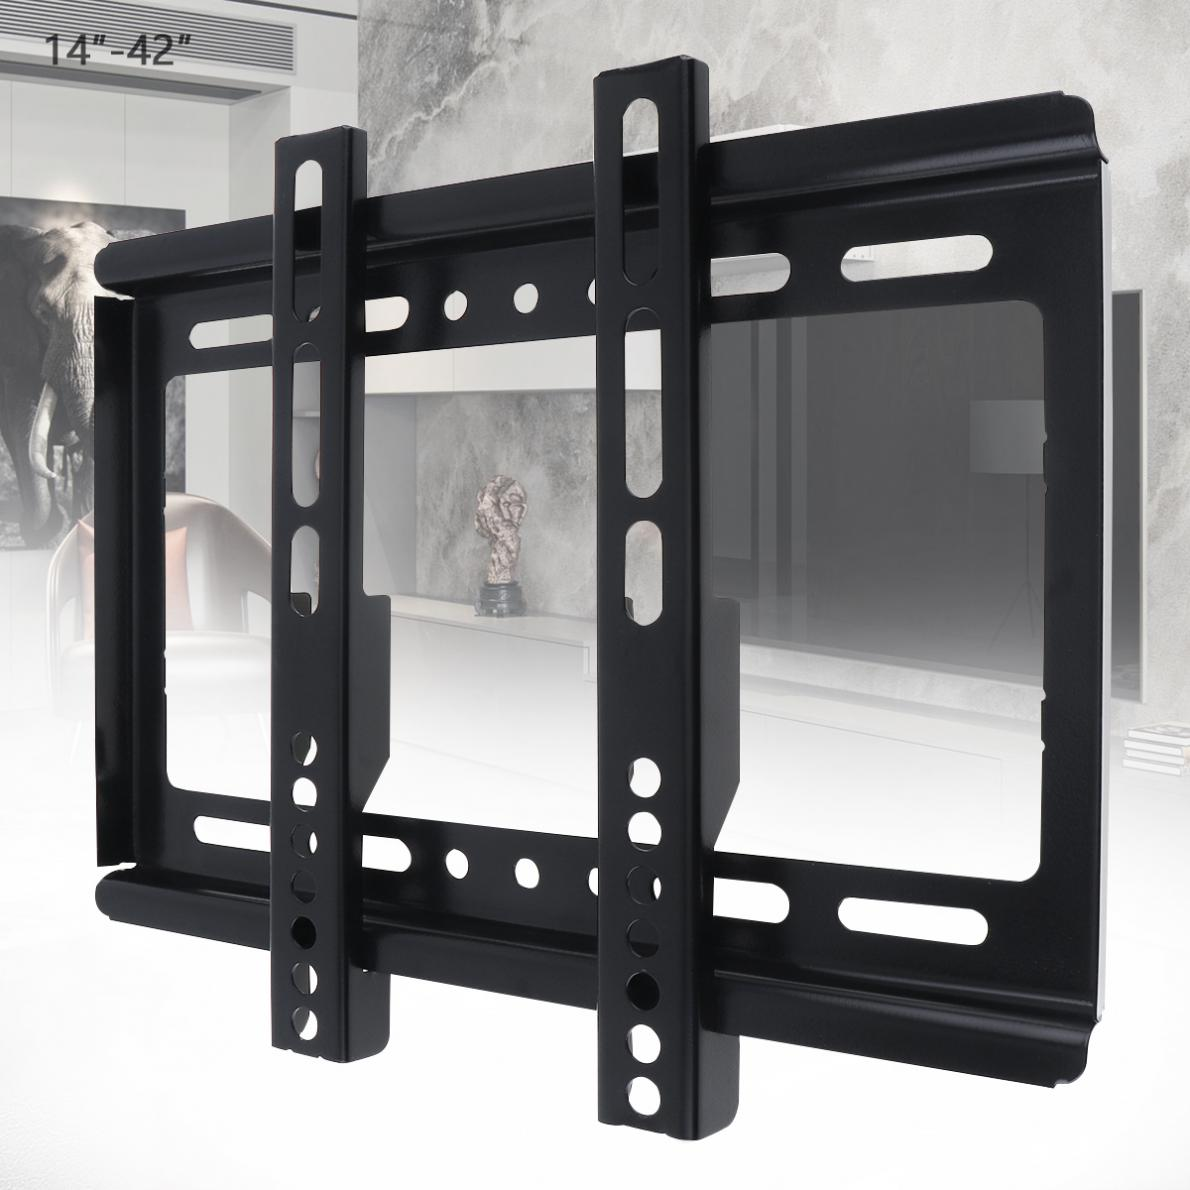 Universal Thin 25KG 14 - 42 Inch TV Wall Mount Bracket Flat Panel TV Frame with Gradienter for LCD LED Monitor Flat Pan